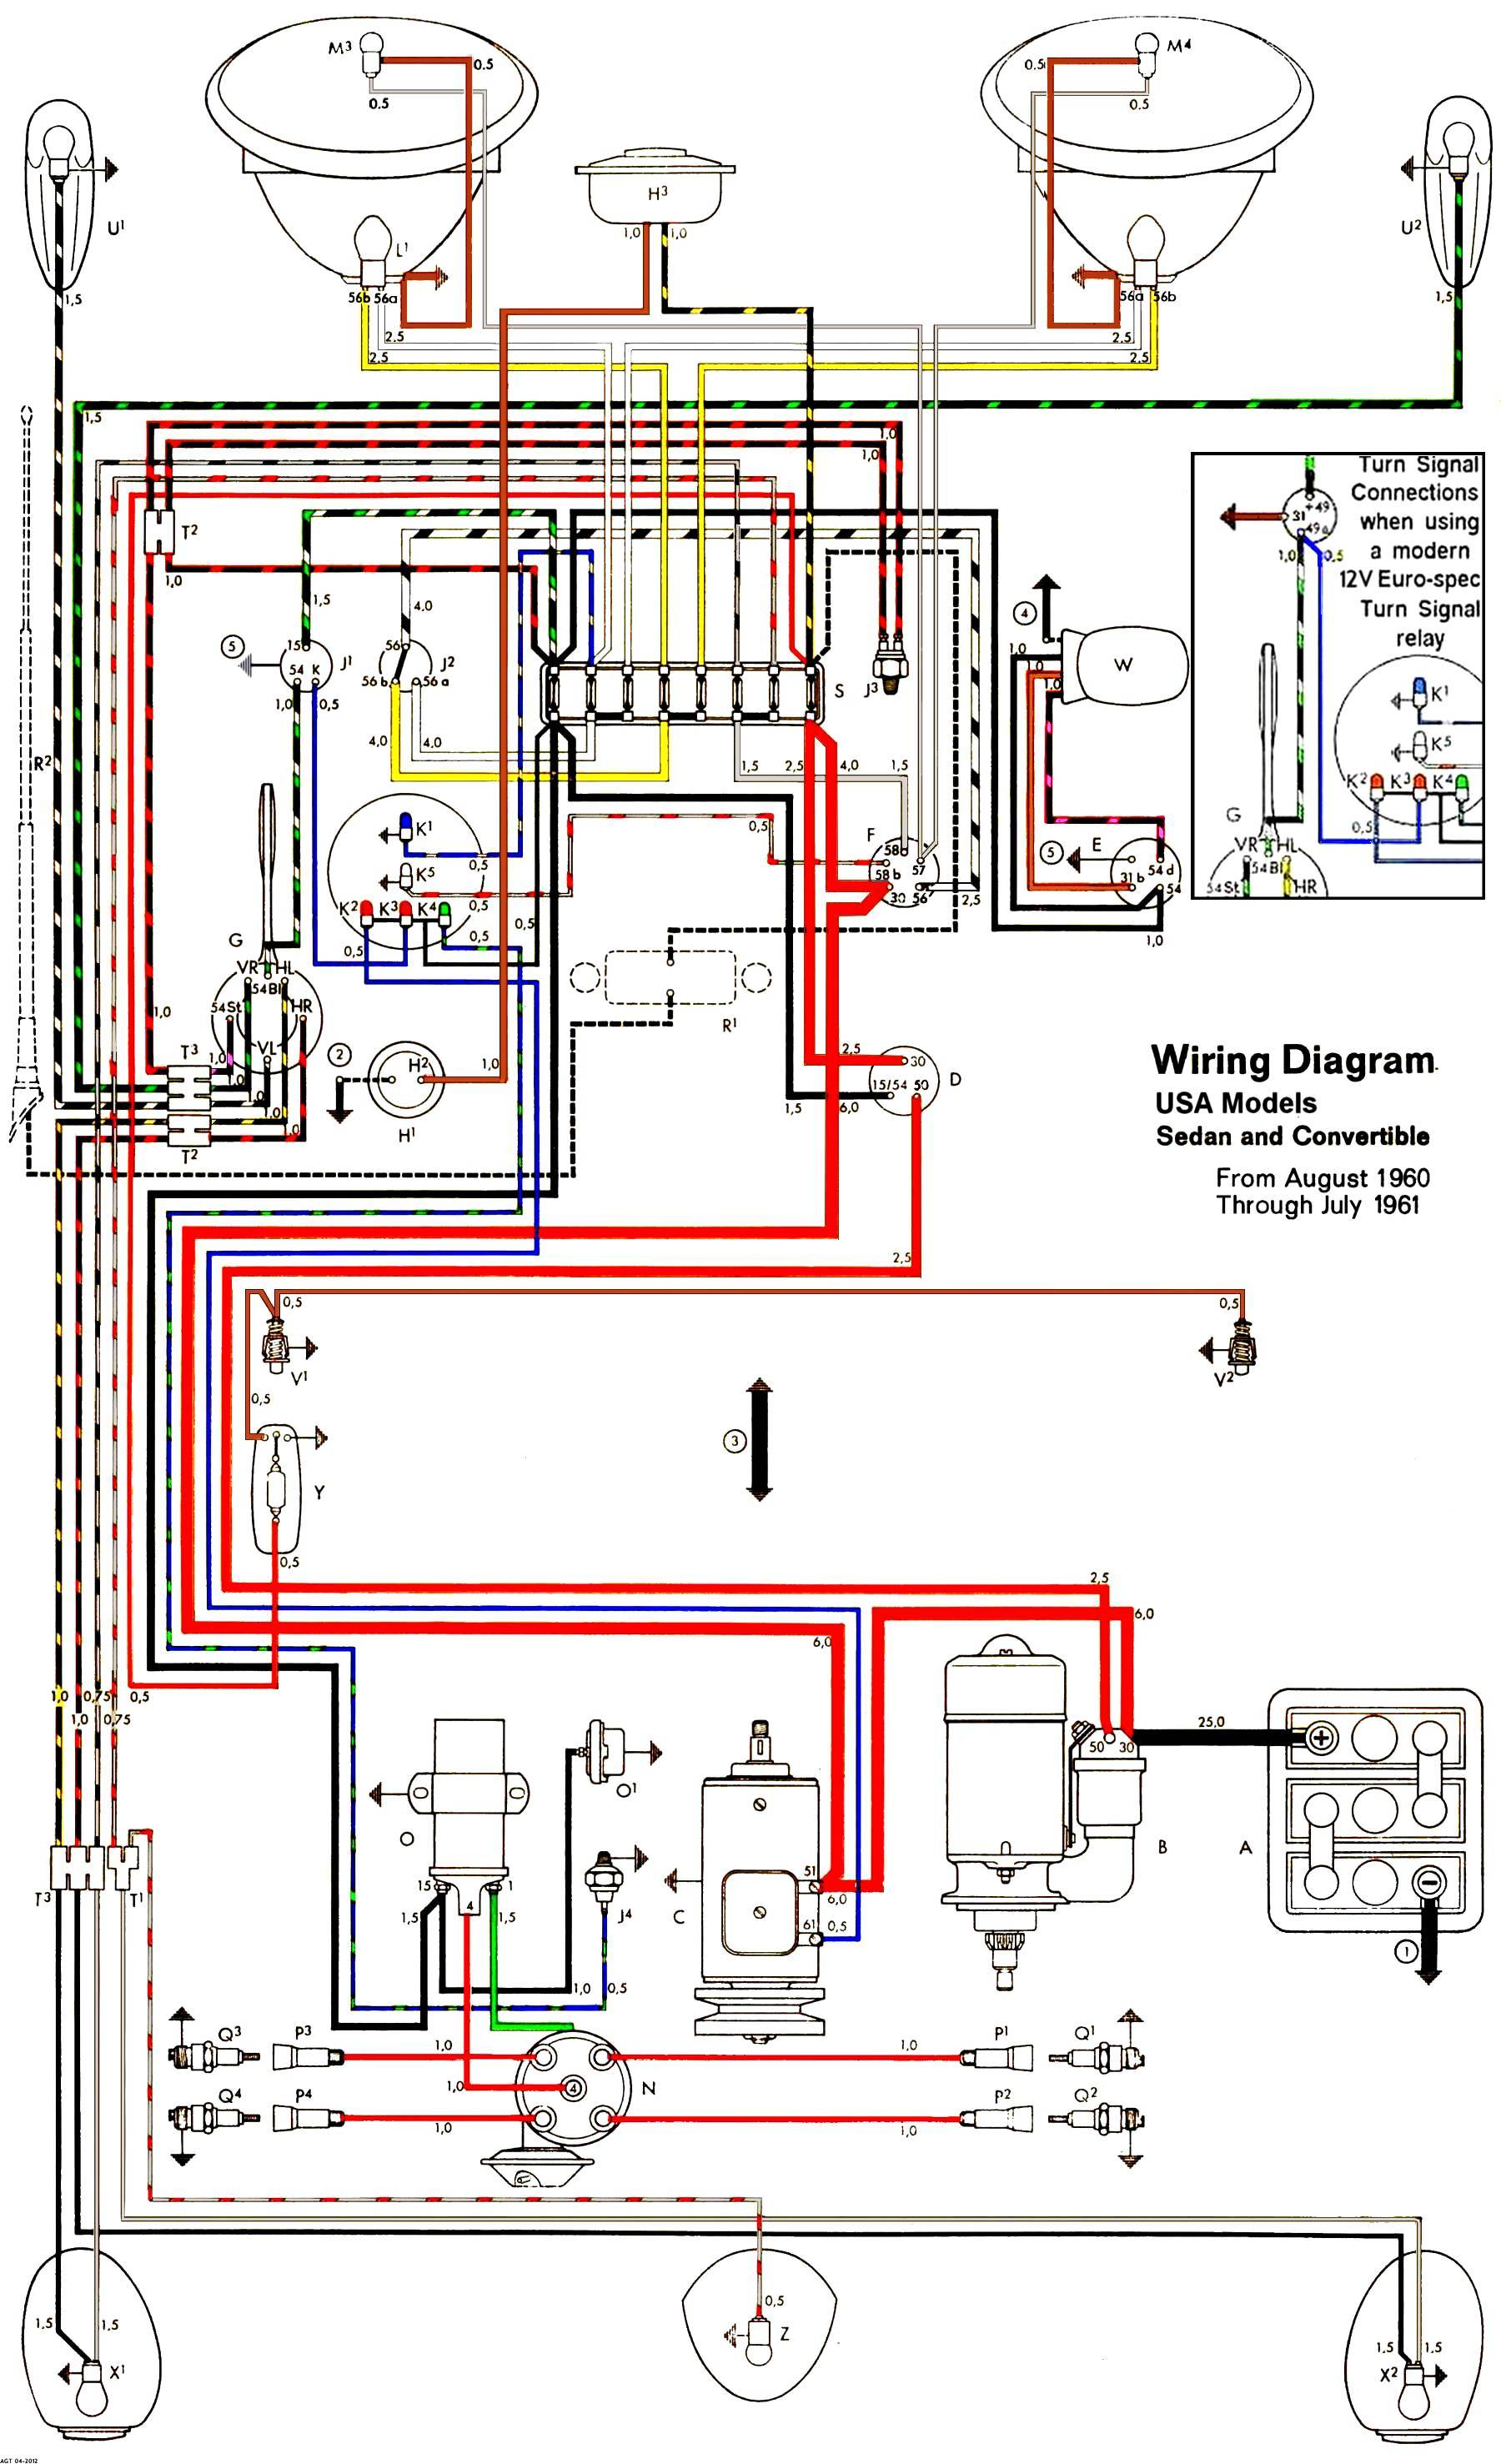 1961USA T1 thesamba com type 1 wiring diagrams 1965 vw beetle wiring diagram at edmiracle.co